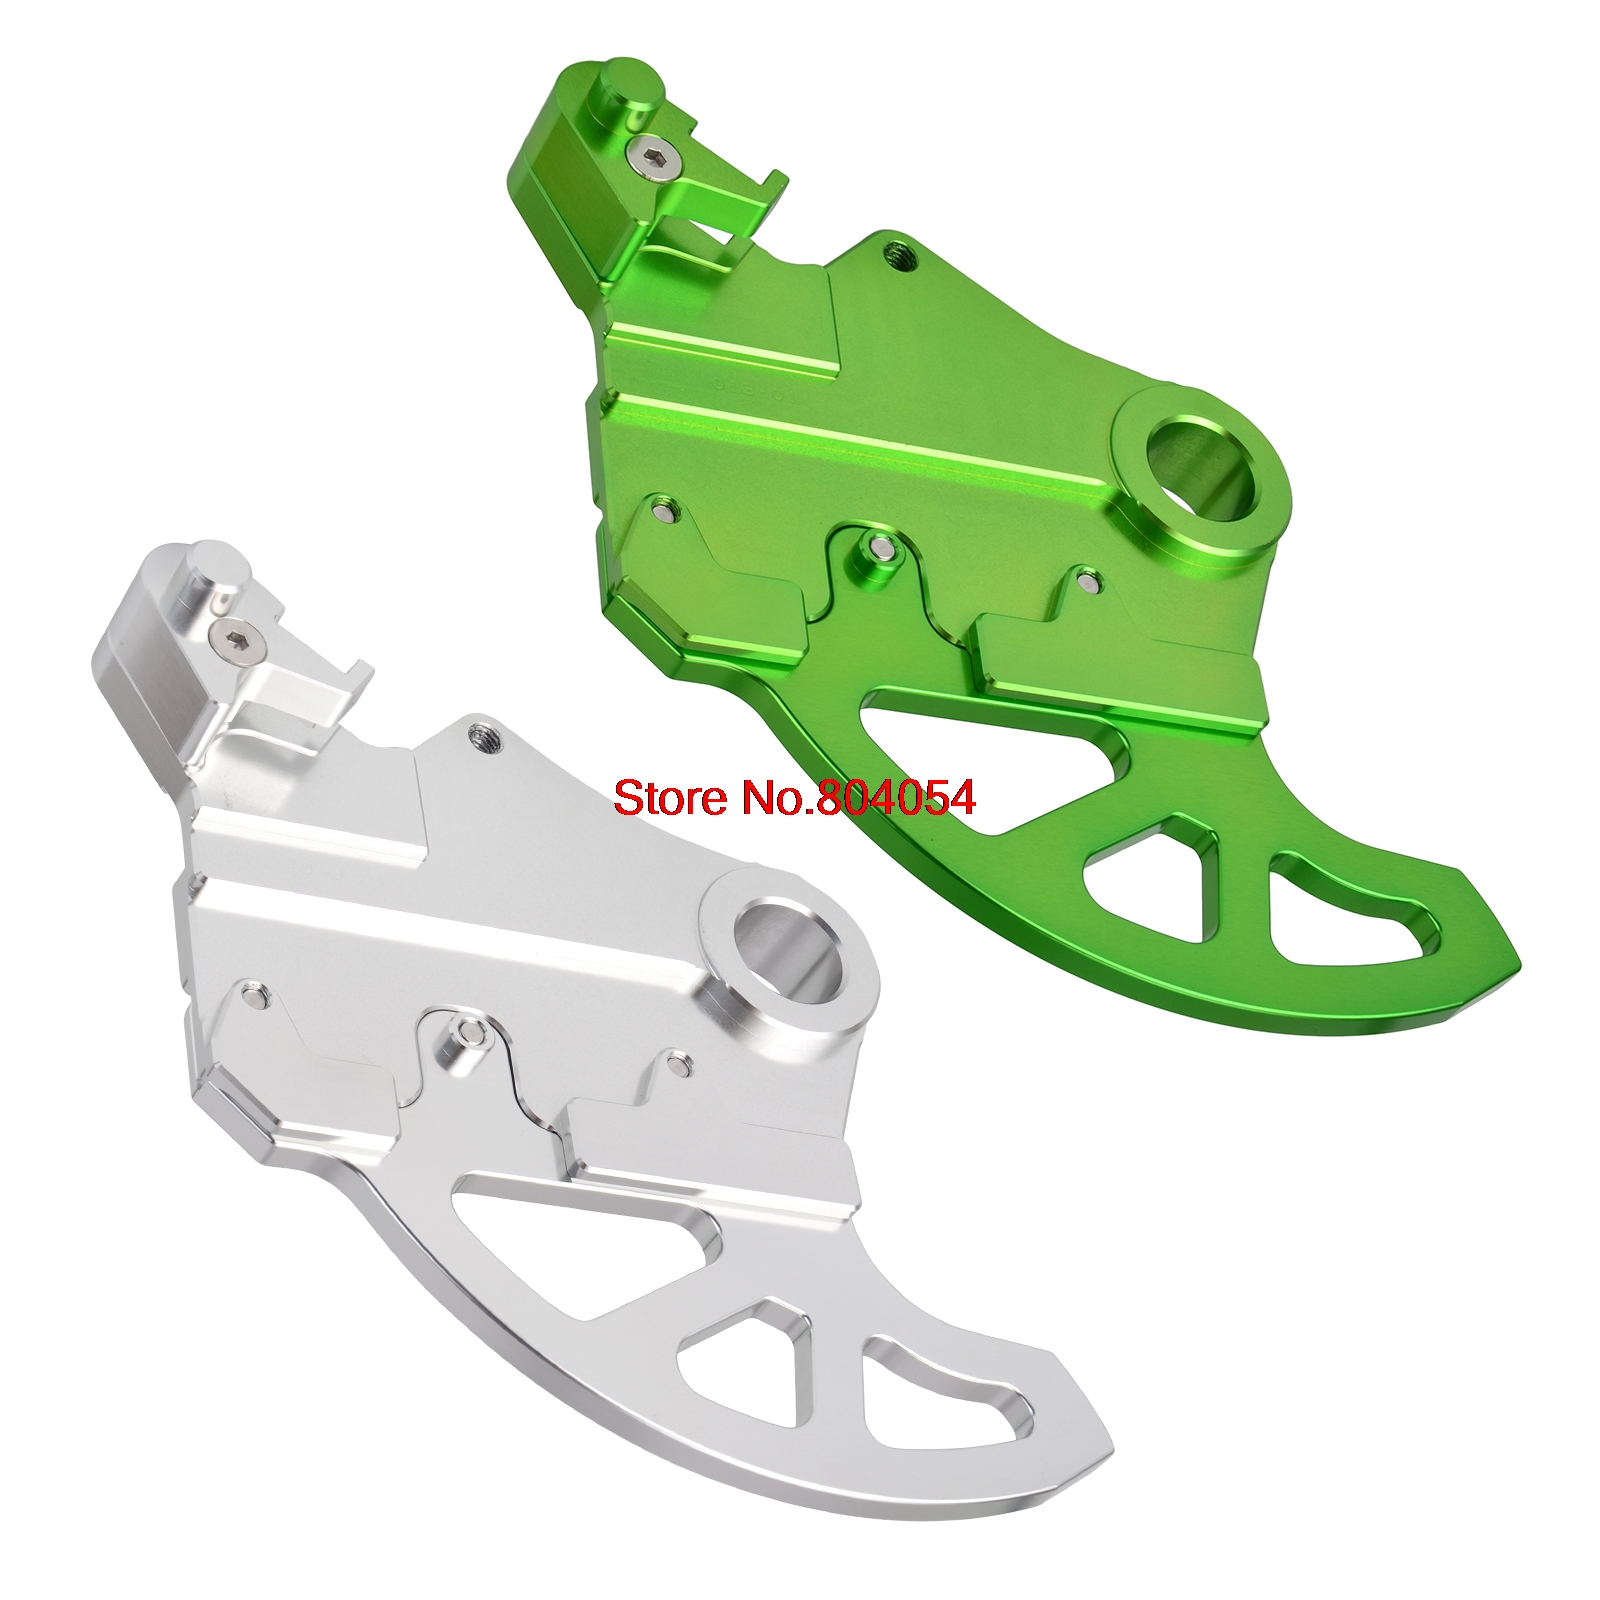 Motorcycle Rear Brake Disc Guard Protector For Kawasaki KX250F 2004-2016 KX450F 2004-2016 KLX450R 2008 2009 2010 2012